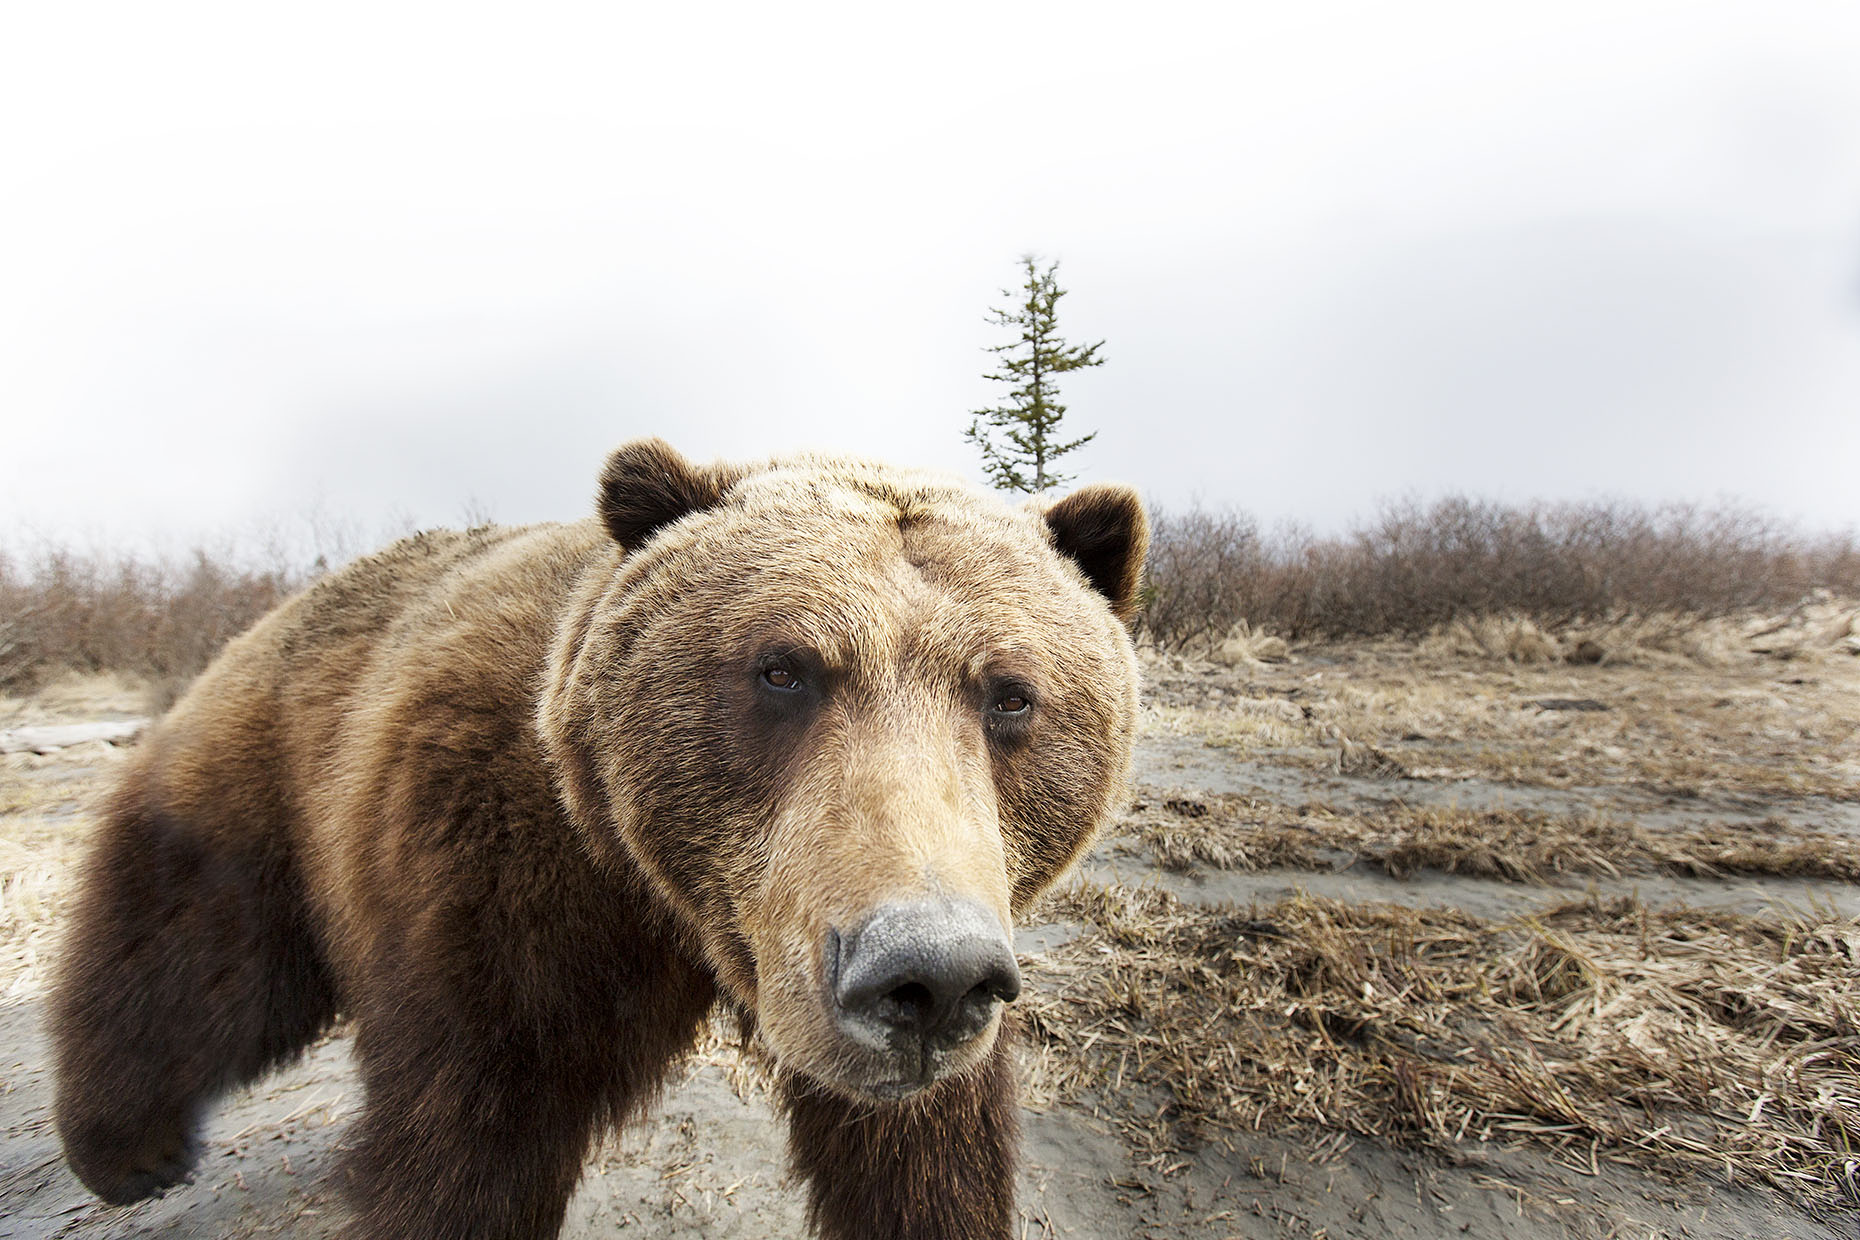 Grizzly bear unclose portrait by Boston based commercial portrait photographer Brian Nevins